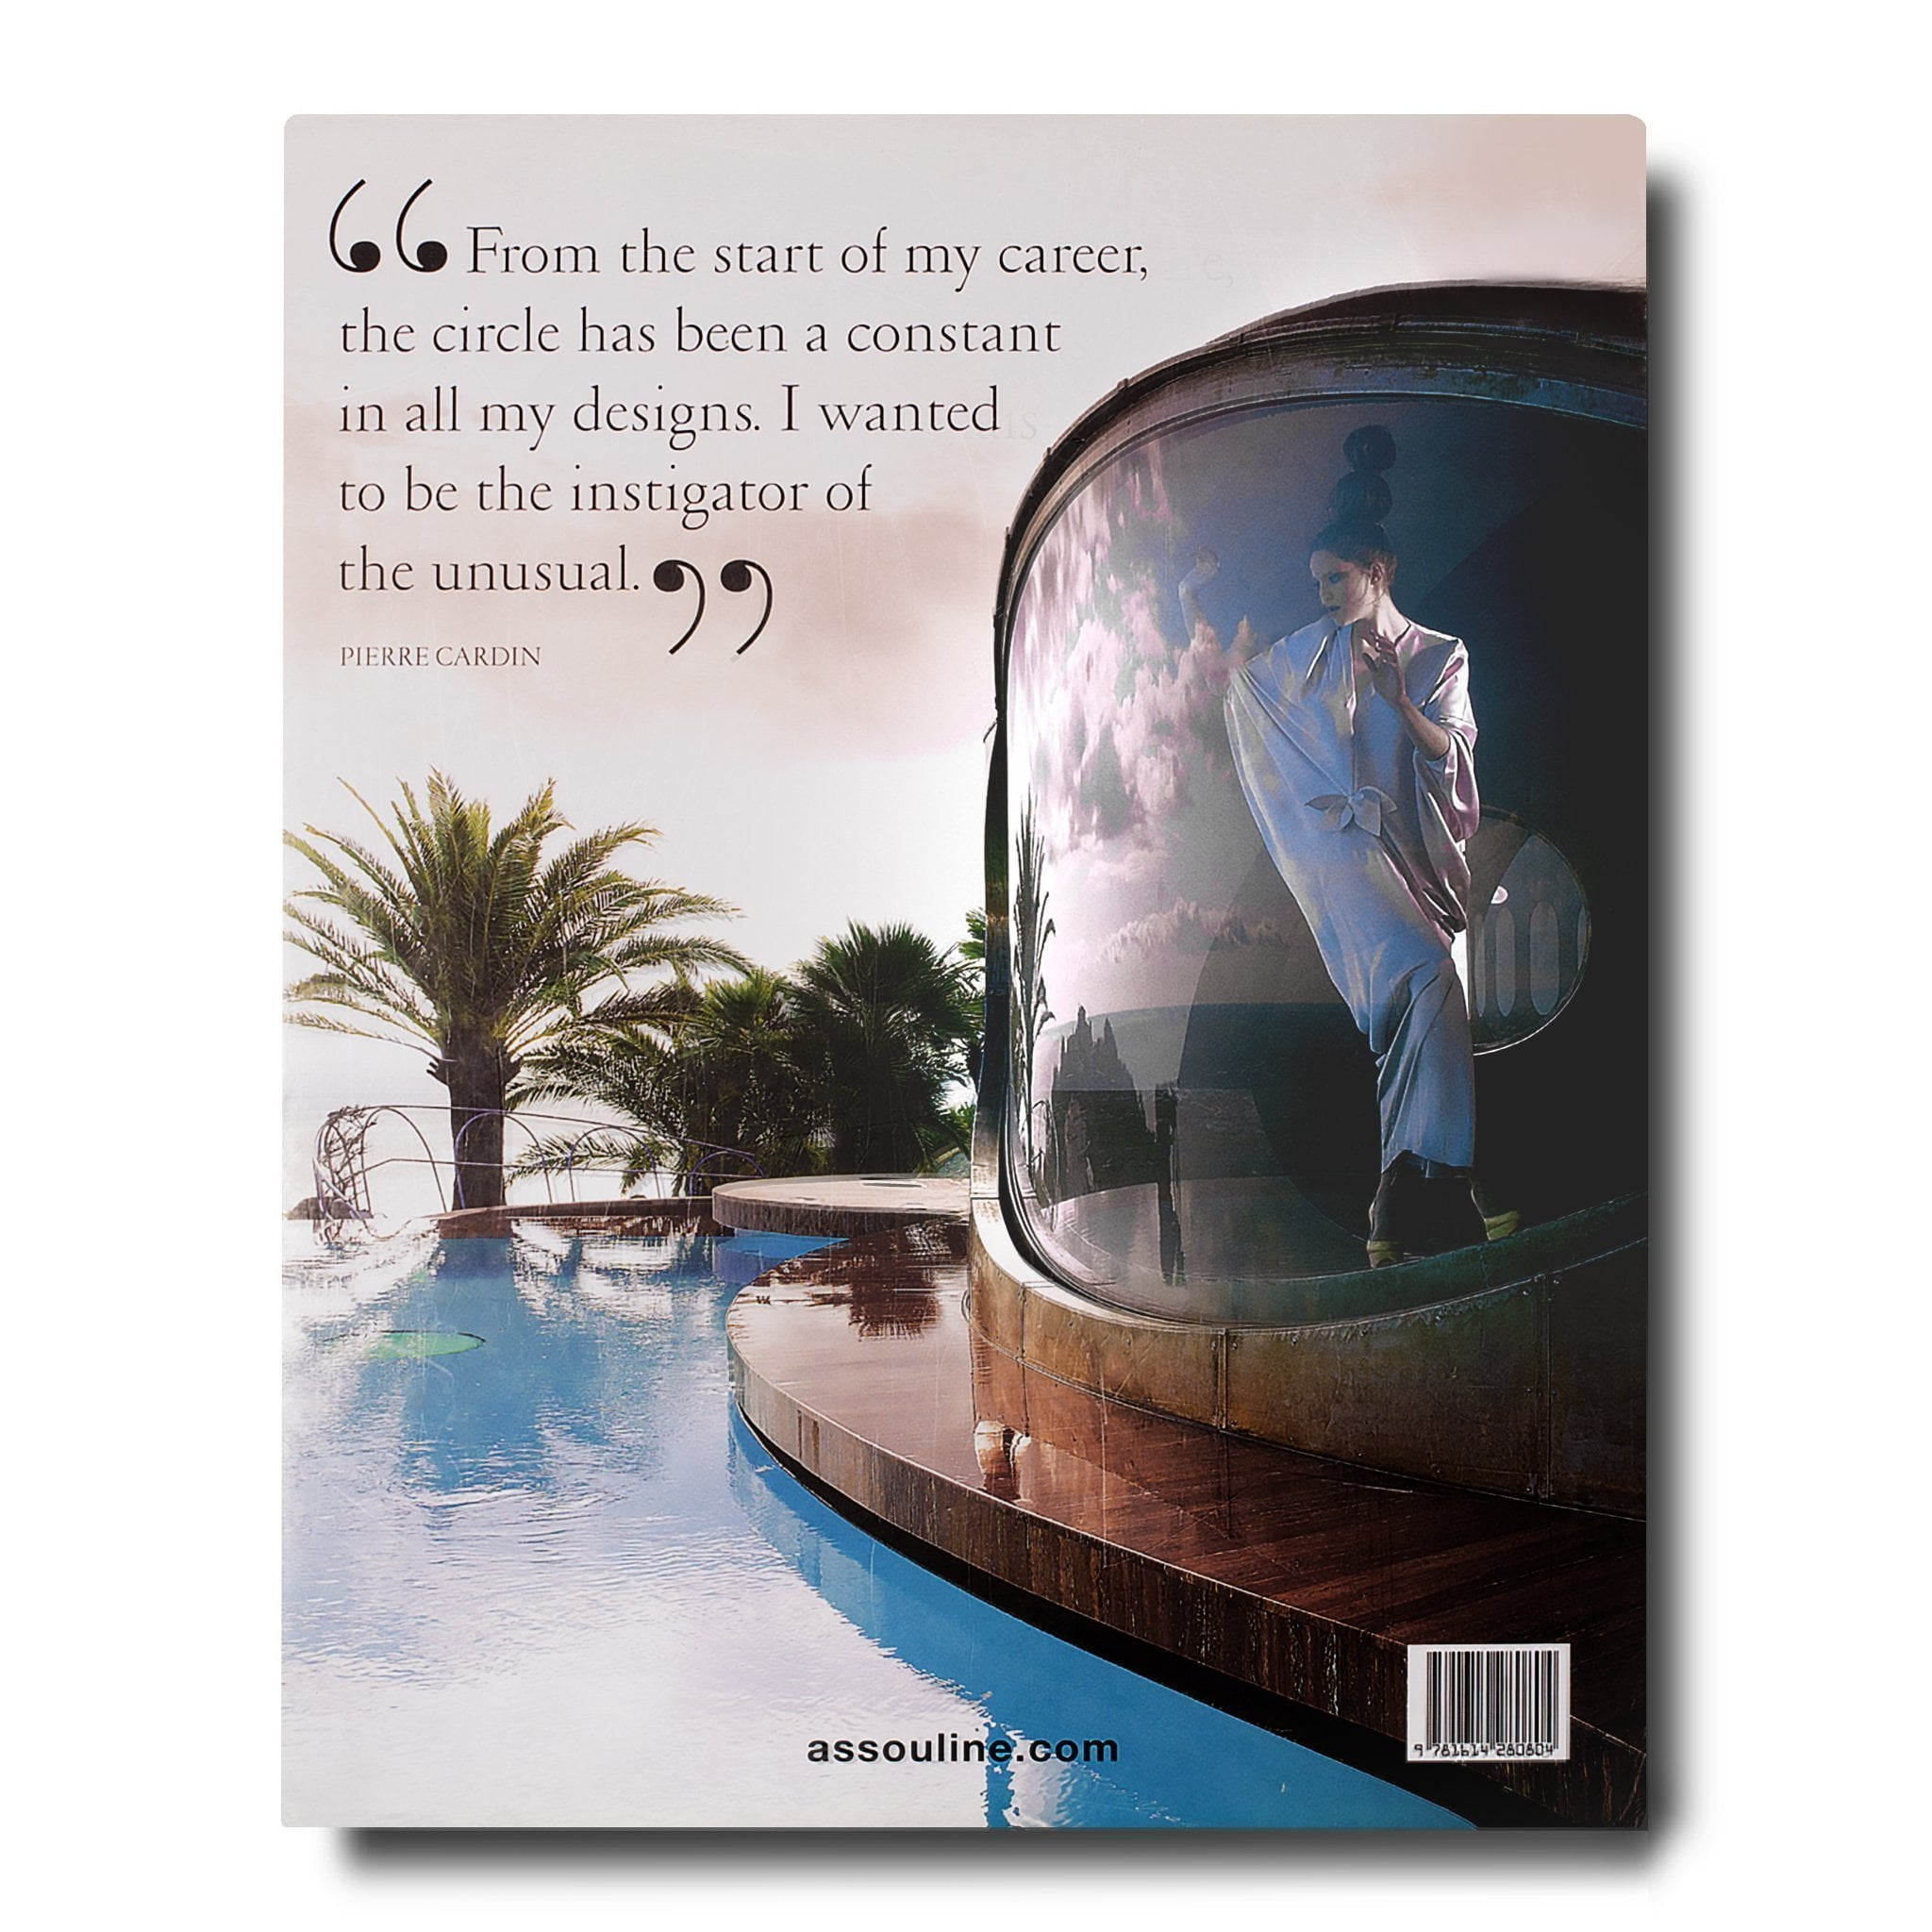 The Palais Bulles of Pierre Cardin - Assouline